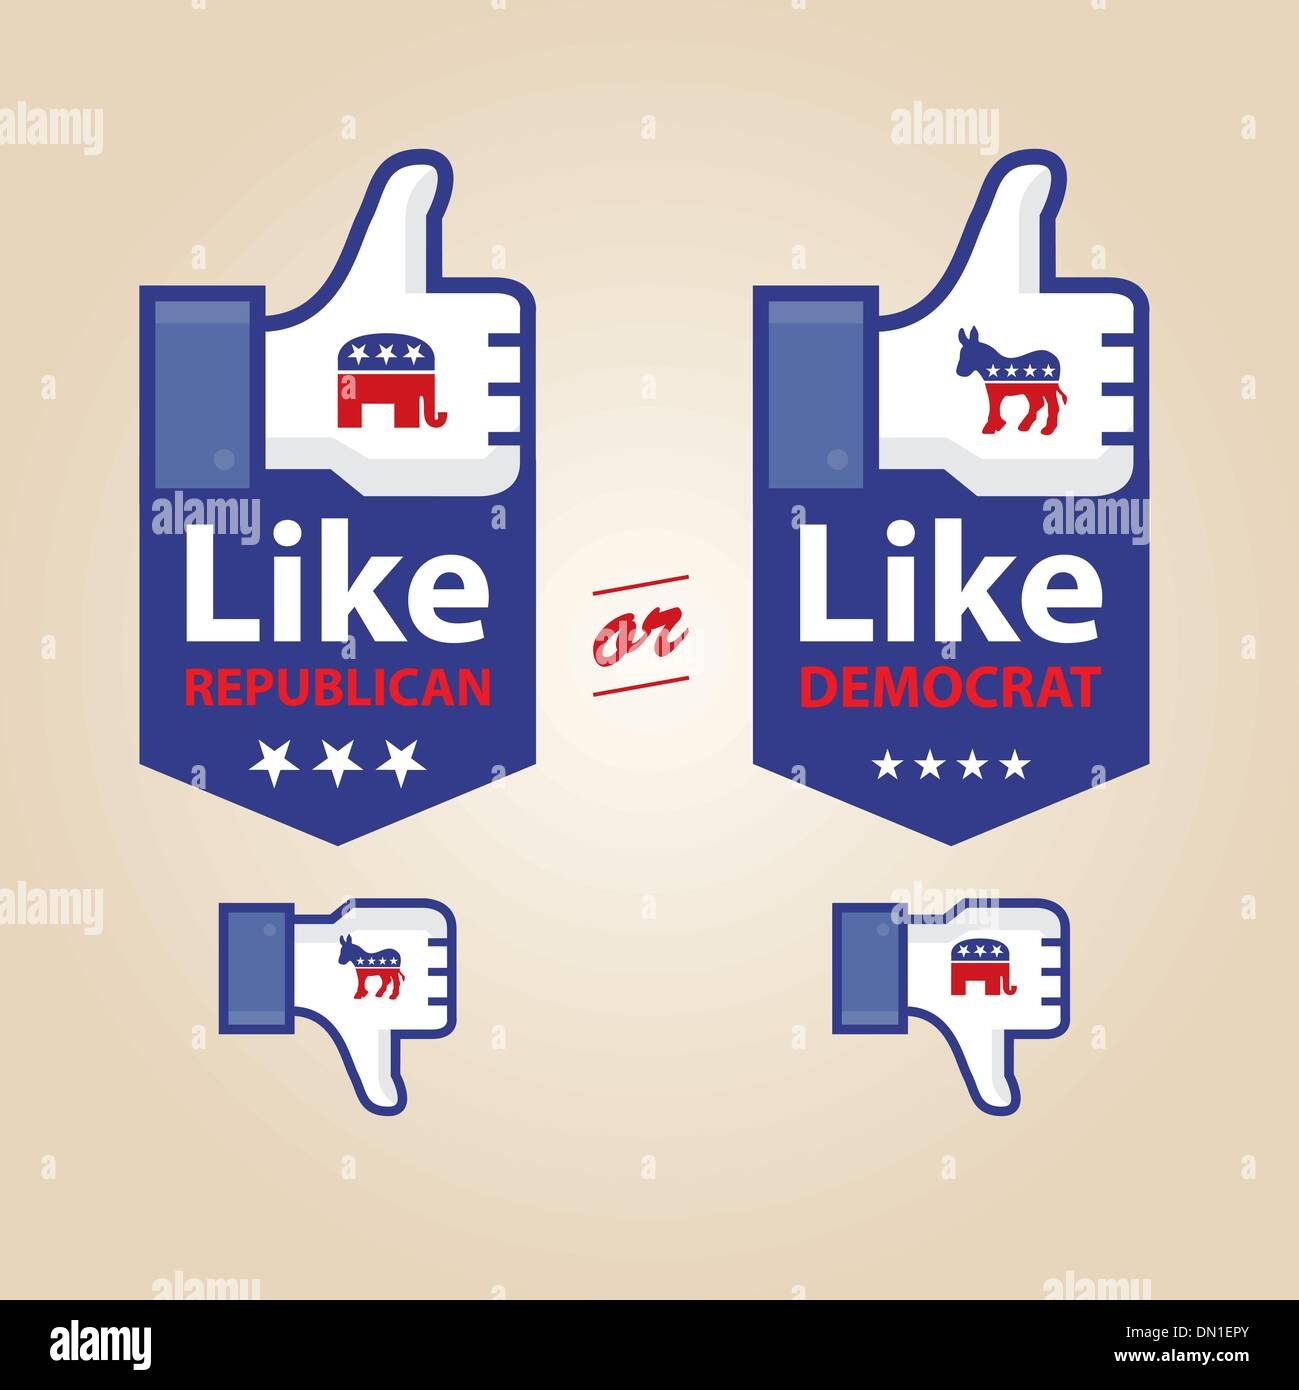 like republican or democrat for presidential election - Stock Image